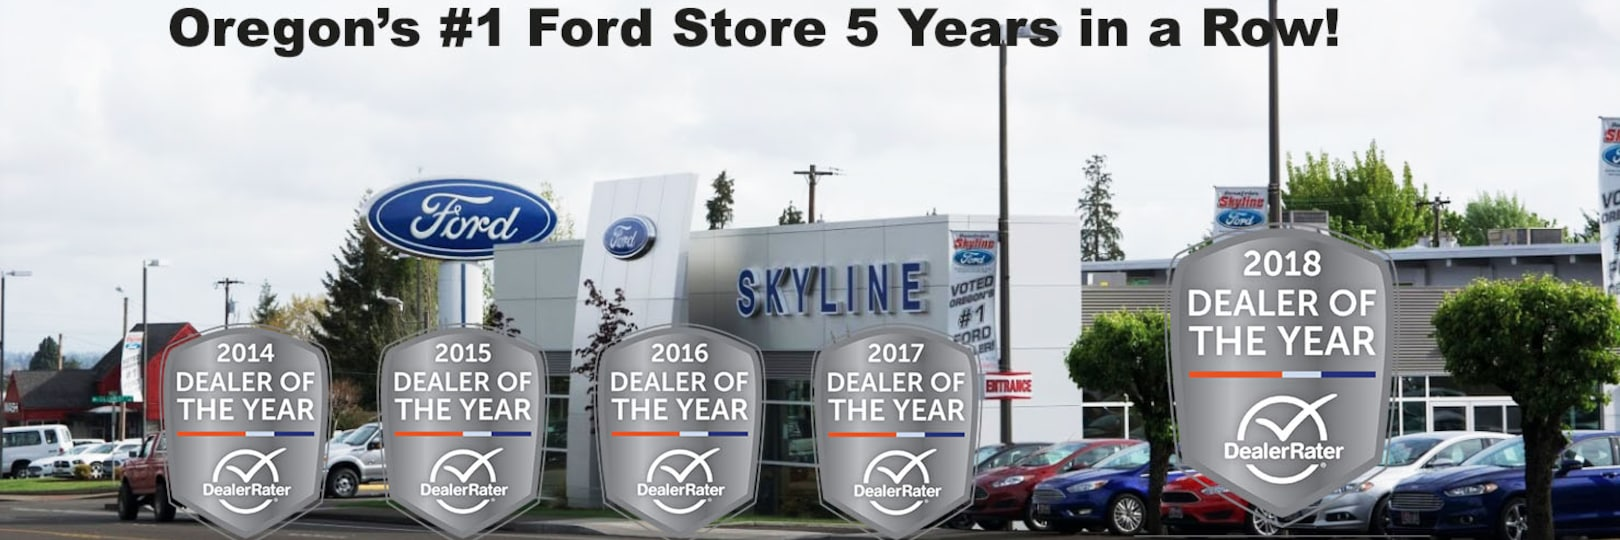 Skyline ford salem or new used ford dealership skyline ford salem or new used